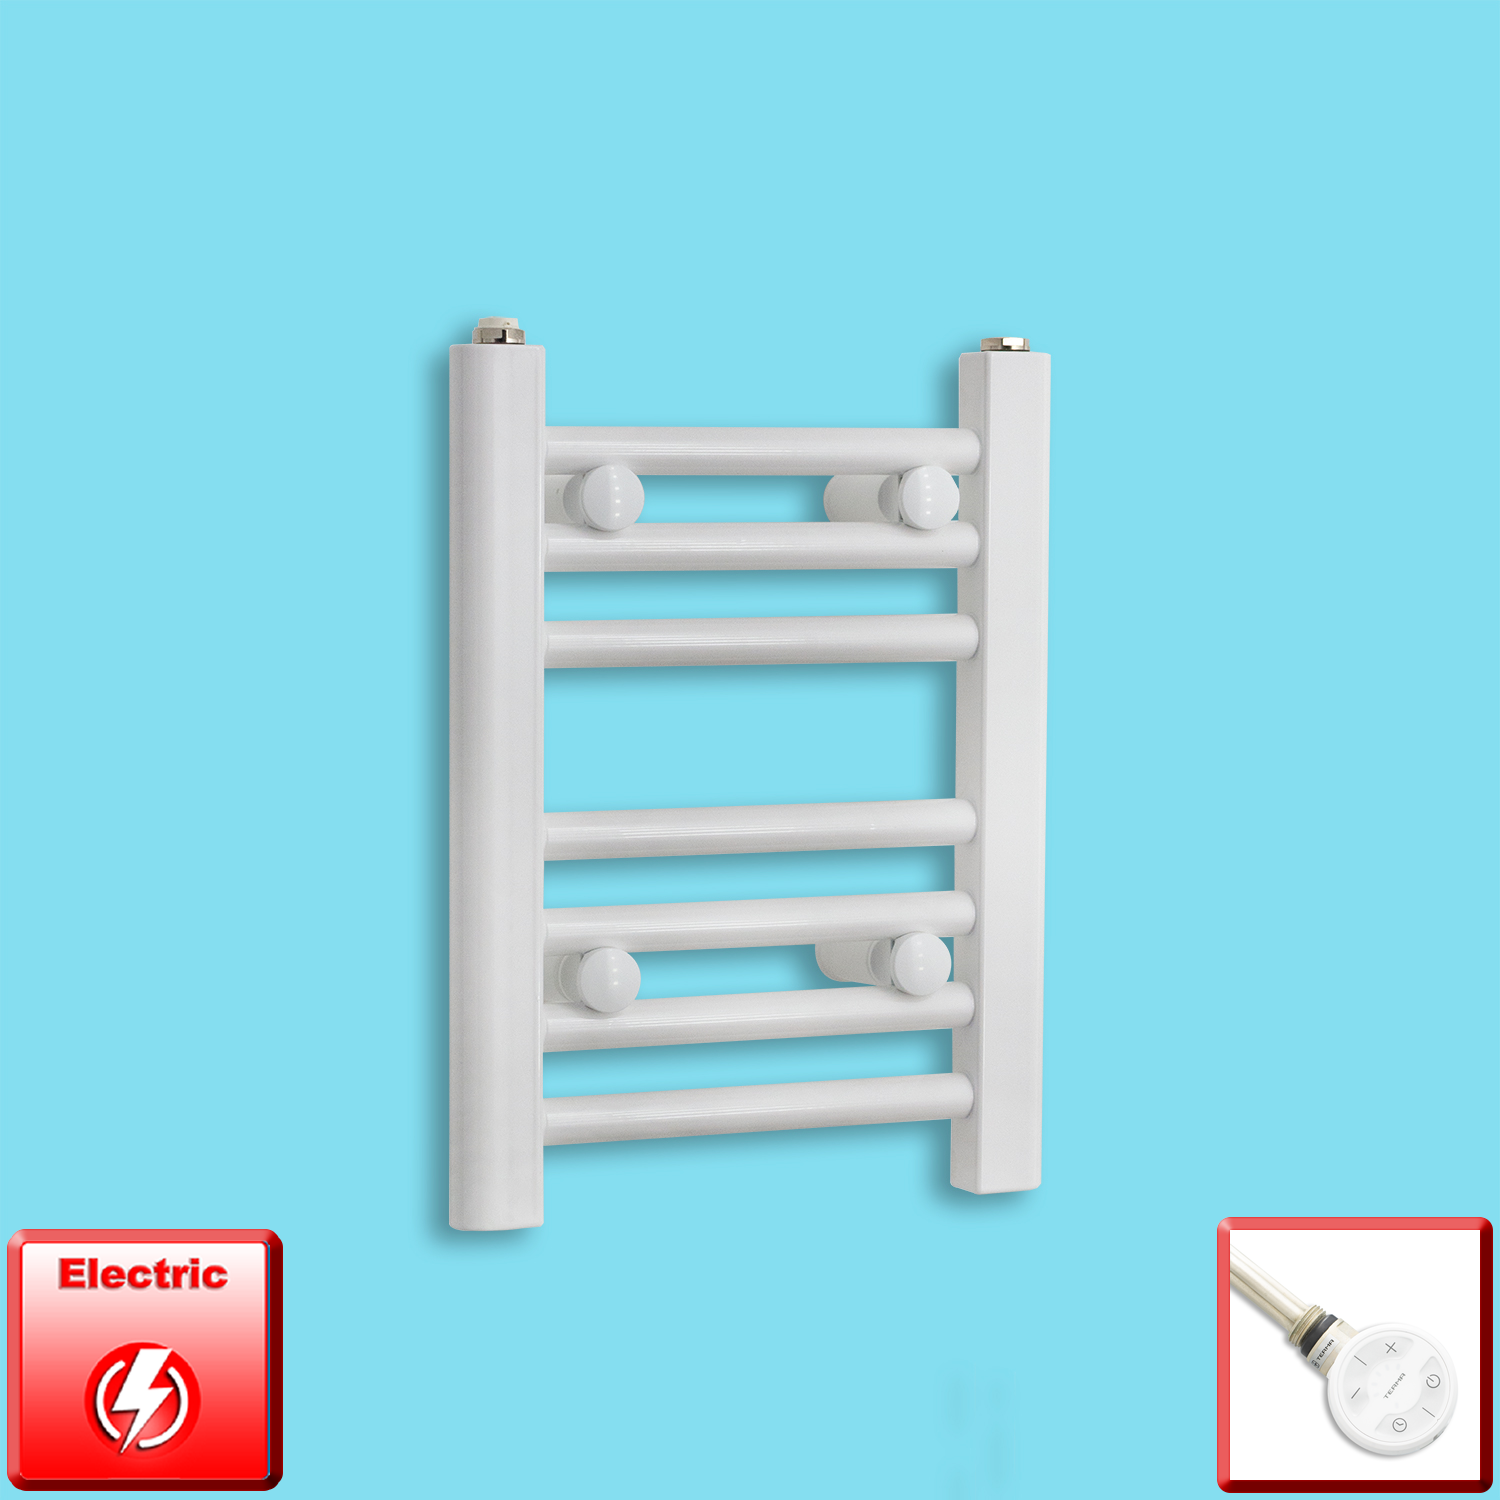 300mm Wide 400mm High Flat WHITE Pre-Filled Electric Heated Towel Rail Radiator HTR,MOA Thermostatic Element